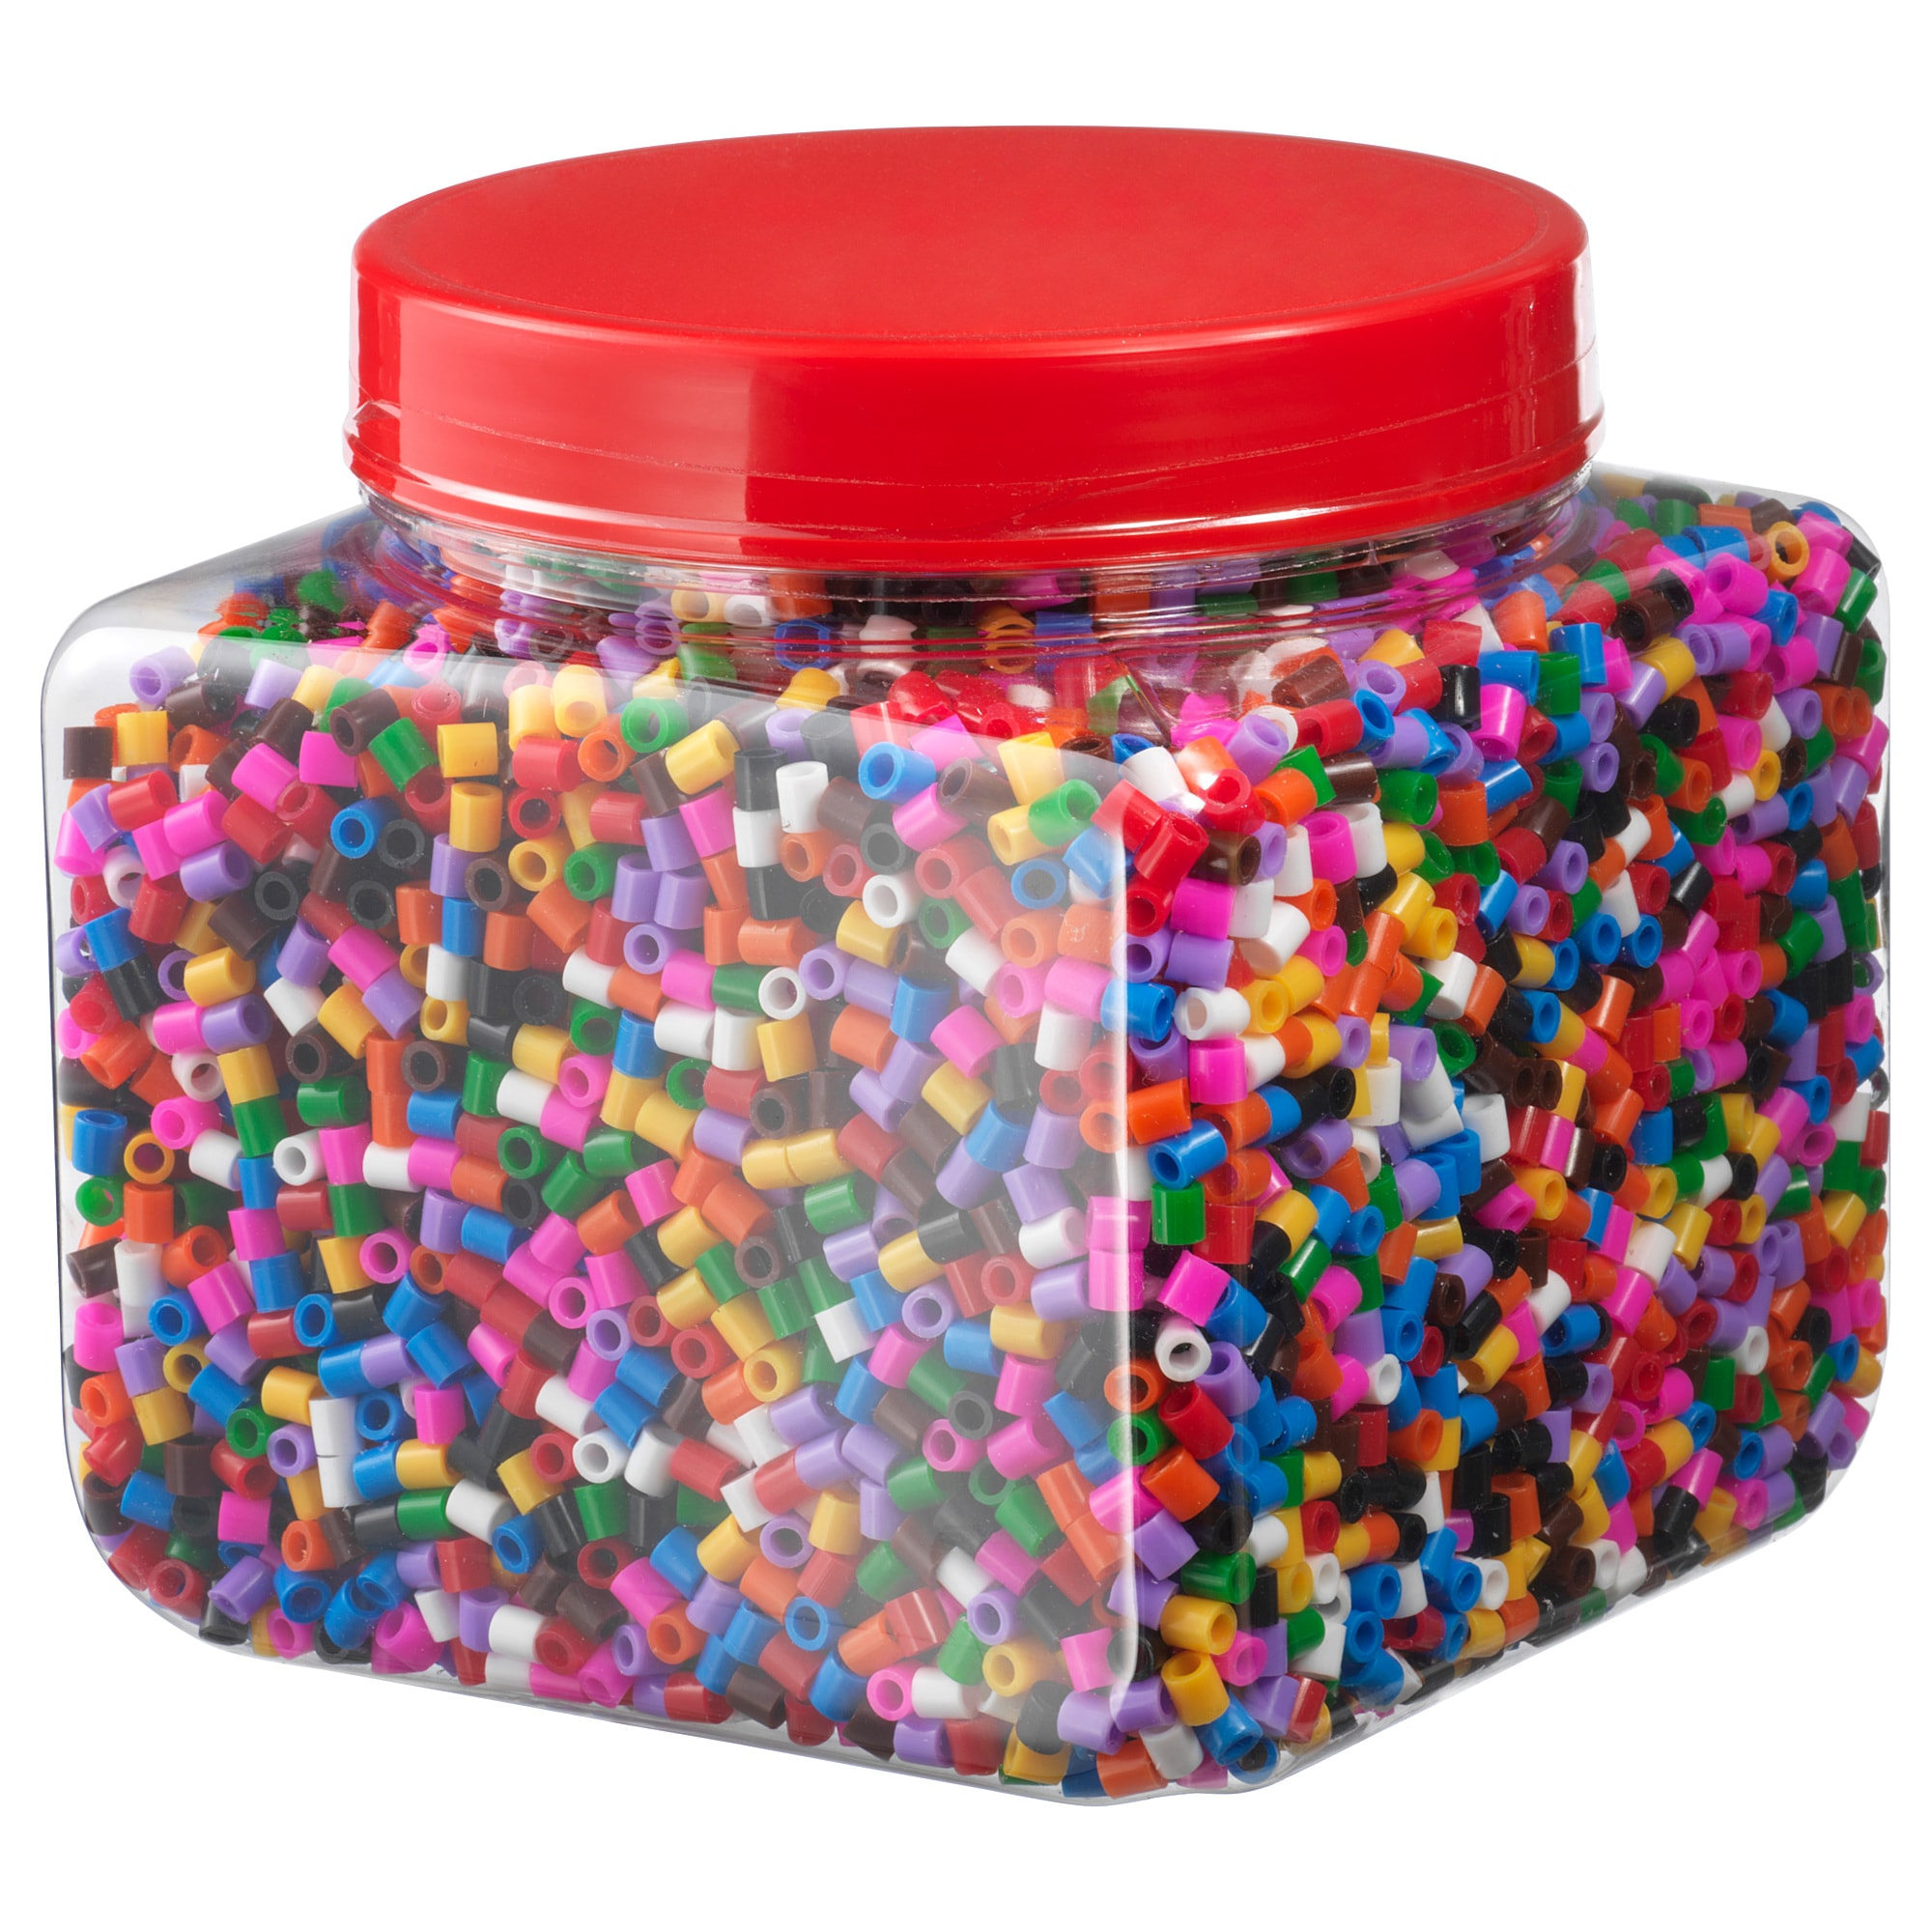 hight resolution of pyssla beads mixed colors assorted colors 1 lb 5 oz 600 g